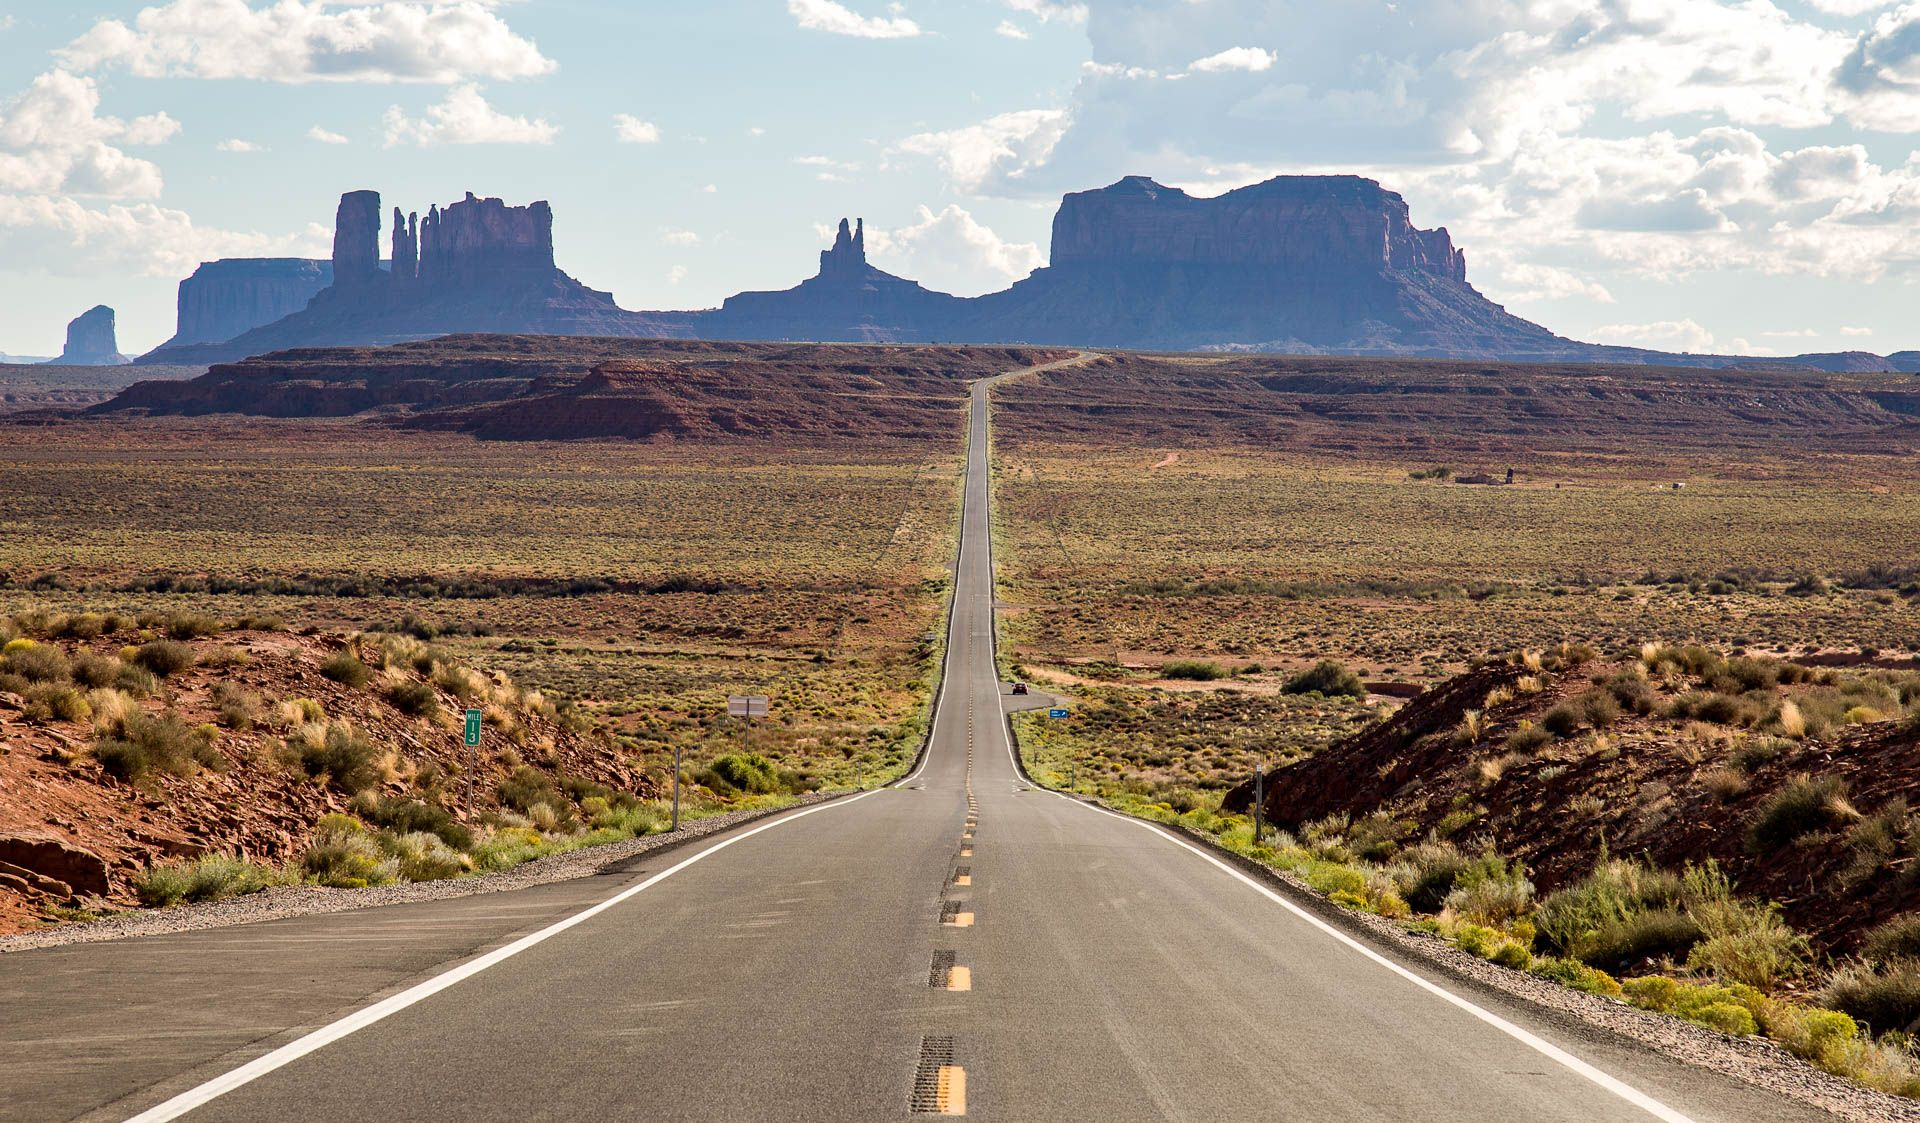 Arches and Monument Valley